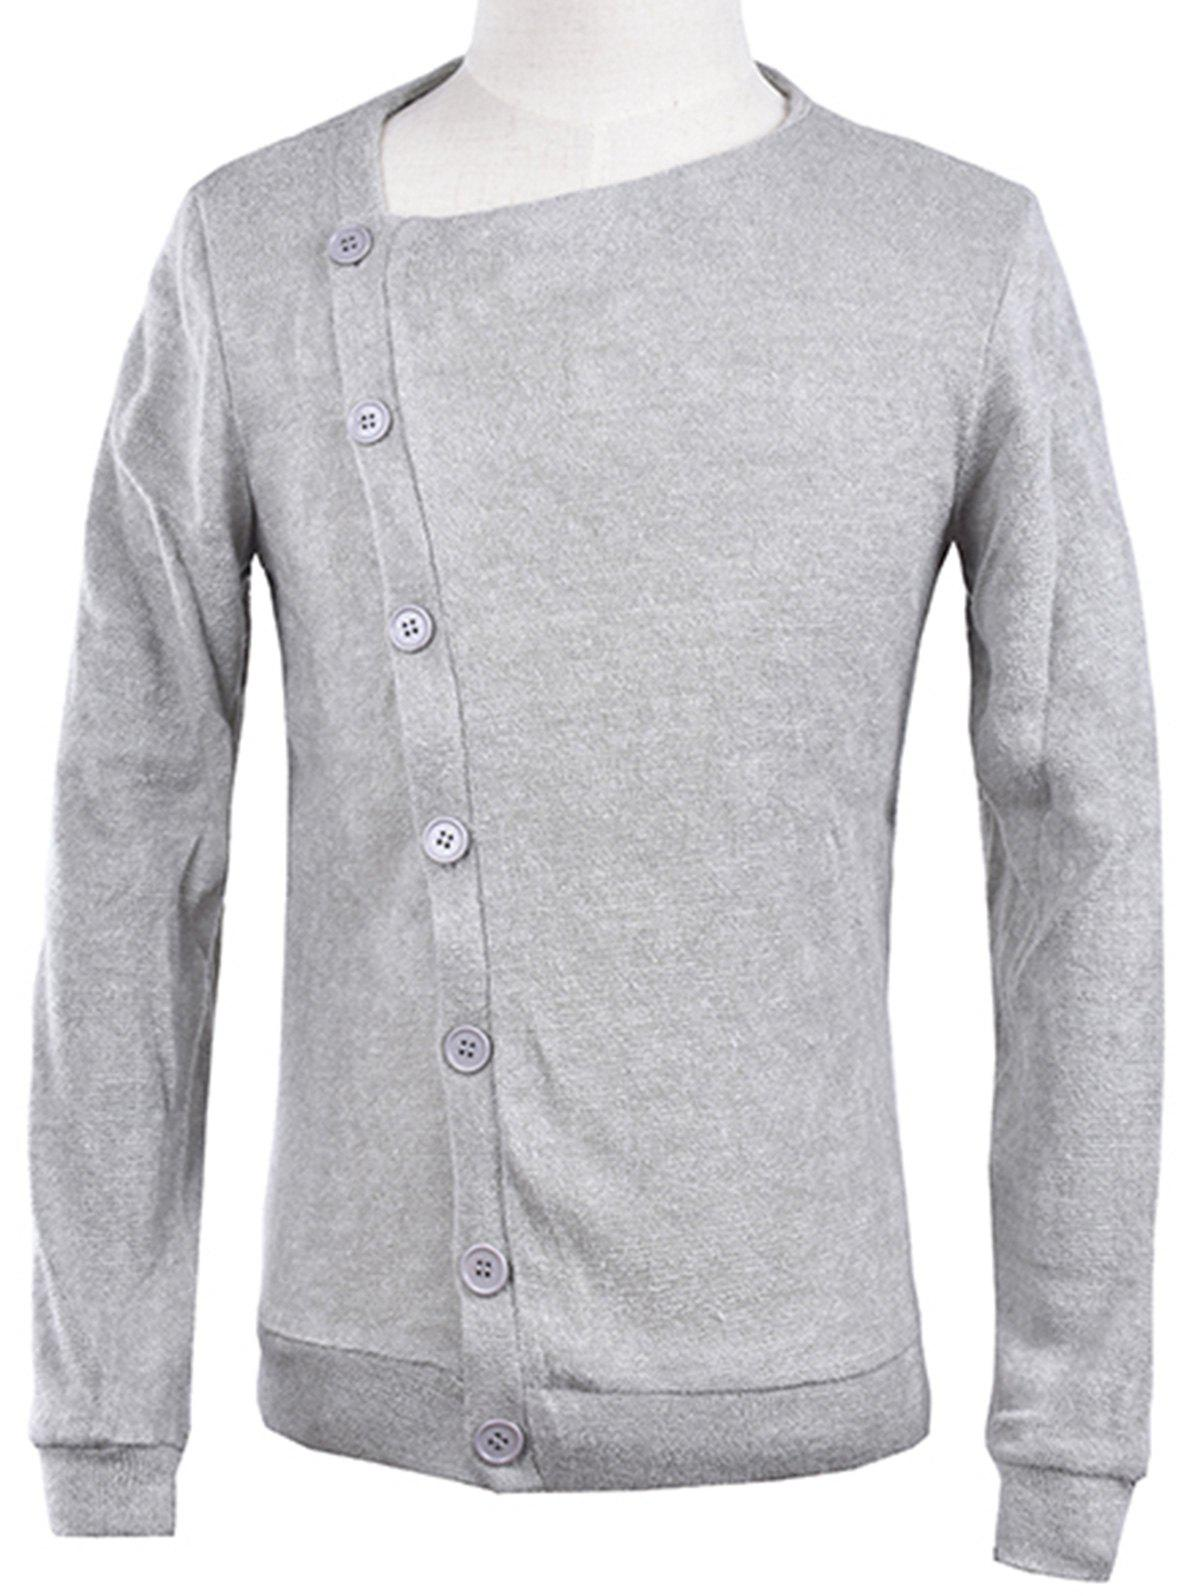 Knitted Oblique Button Up Cardigan - LIGHT GRAY S